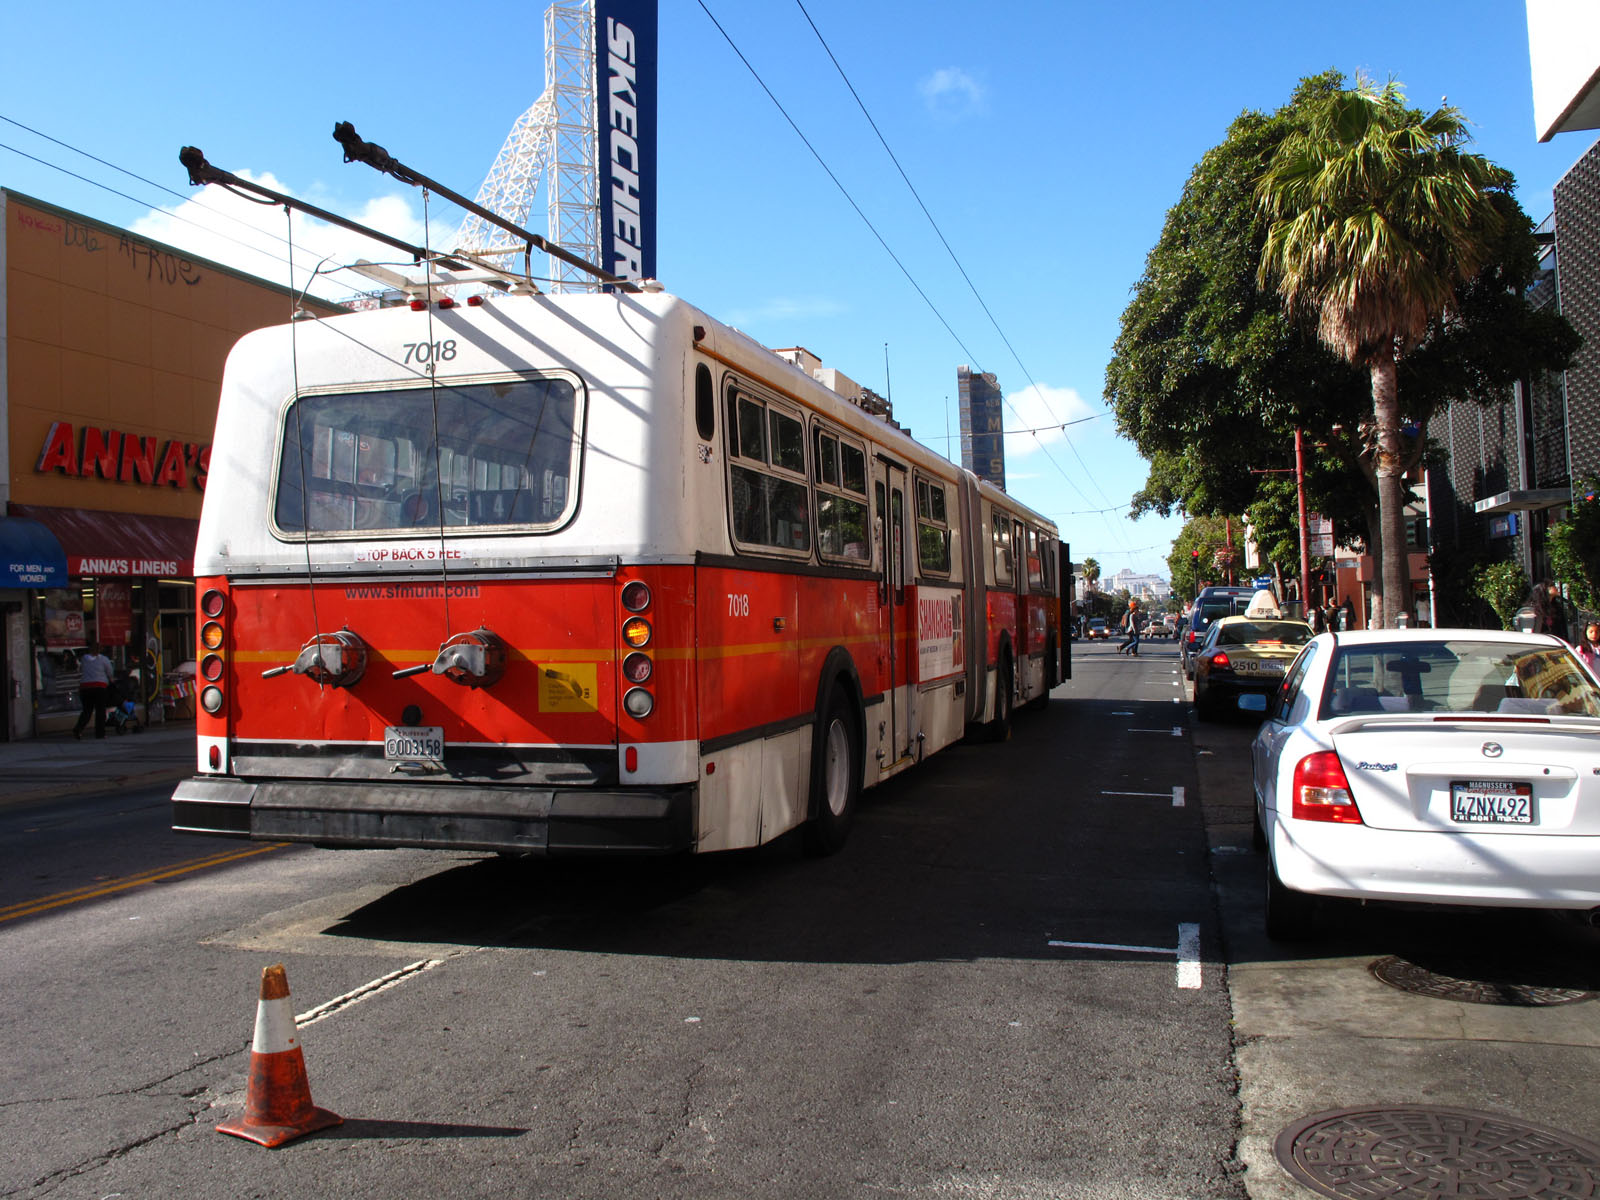 A MUNI bus sits without power near the intersection of Mission Street and 22nd Street, three blocks from where downed power lines cut electricity to MUNI lines in the area. Photo by Gregory Thomas